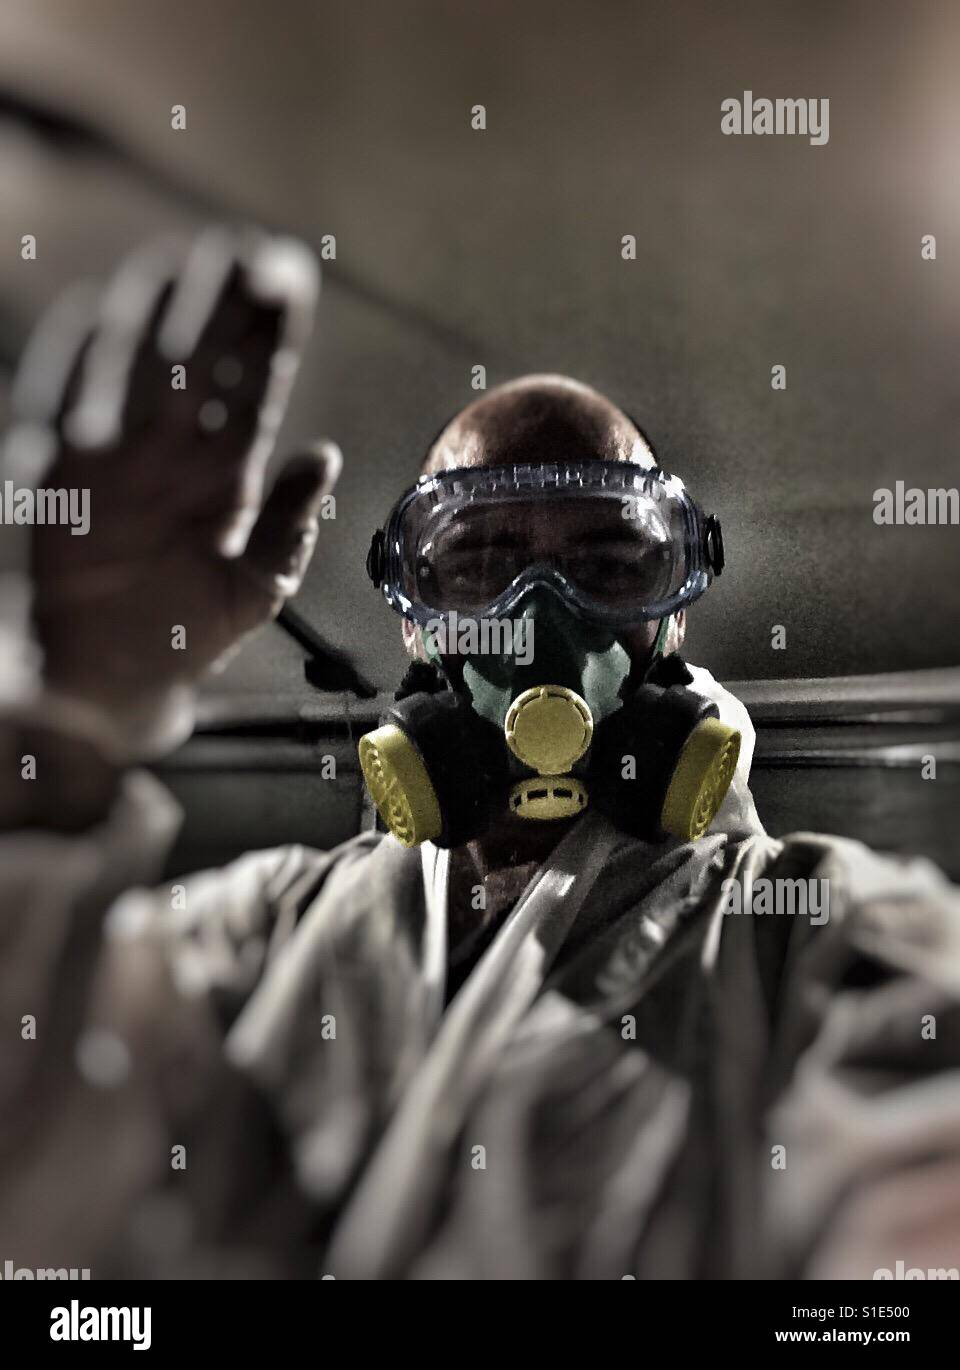 Respirator work safe - Stock Image